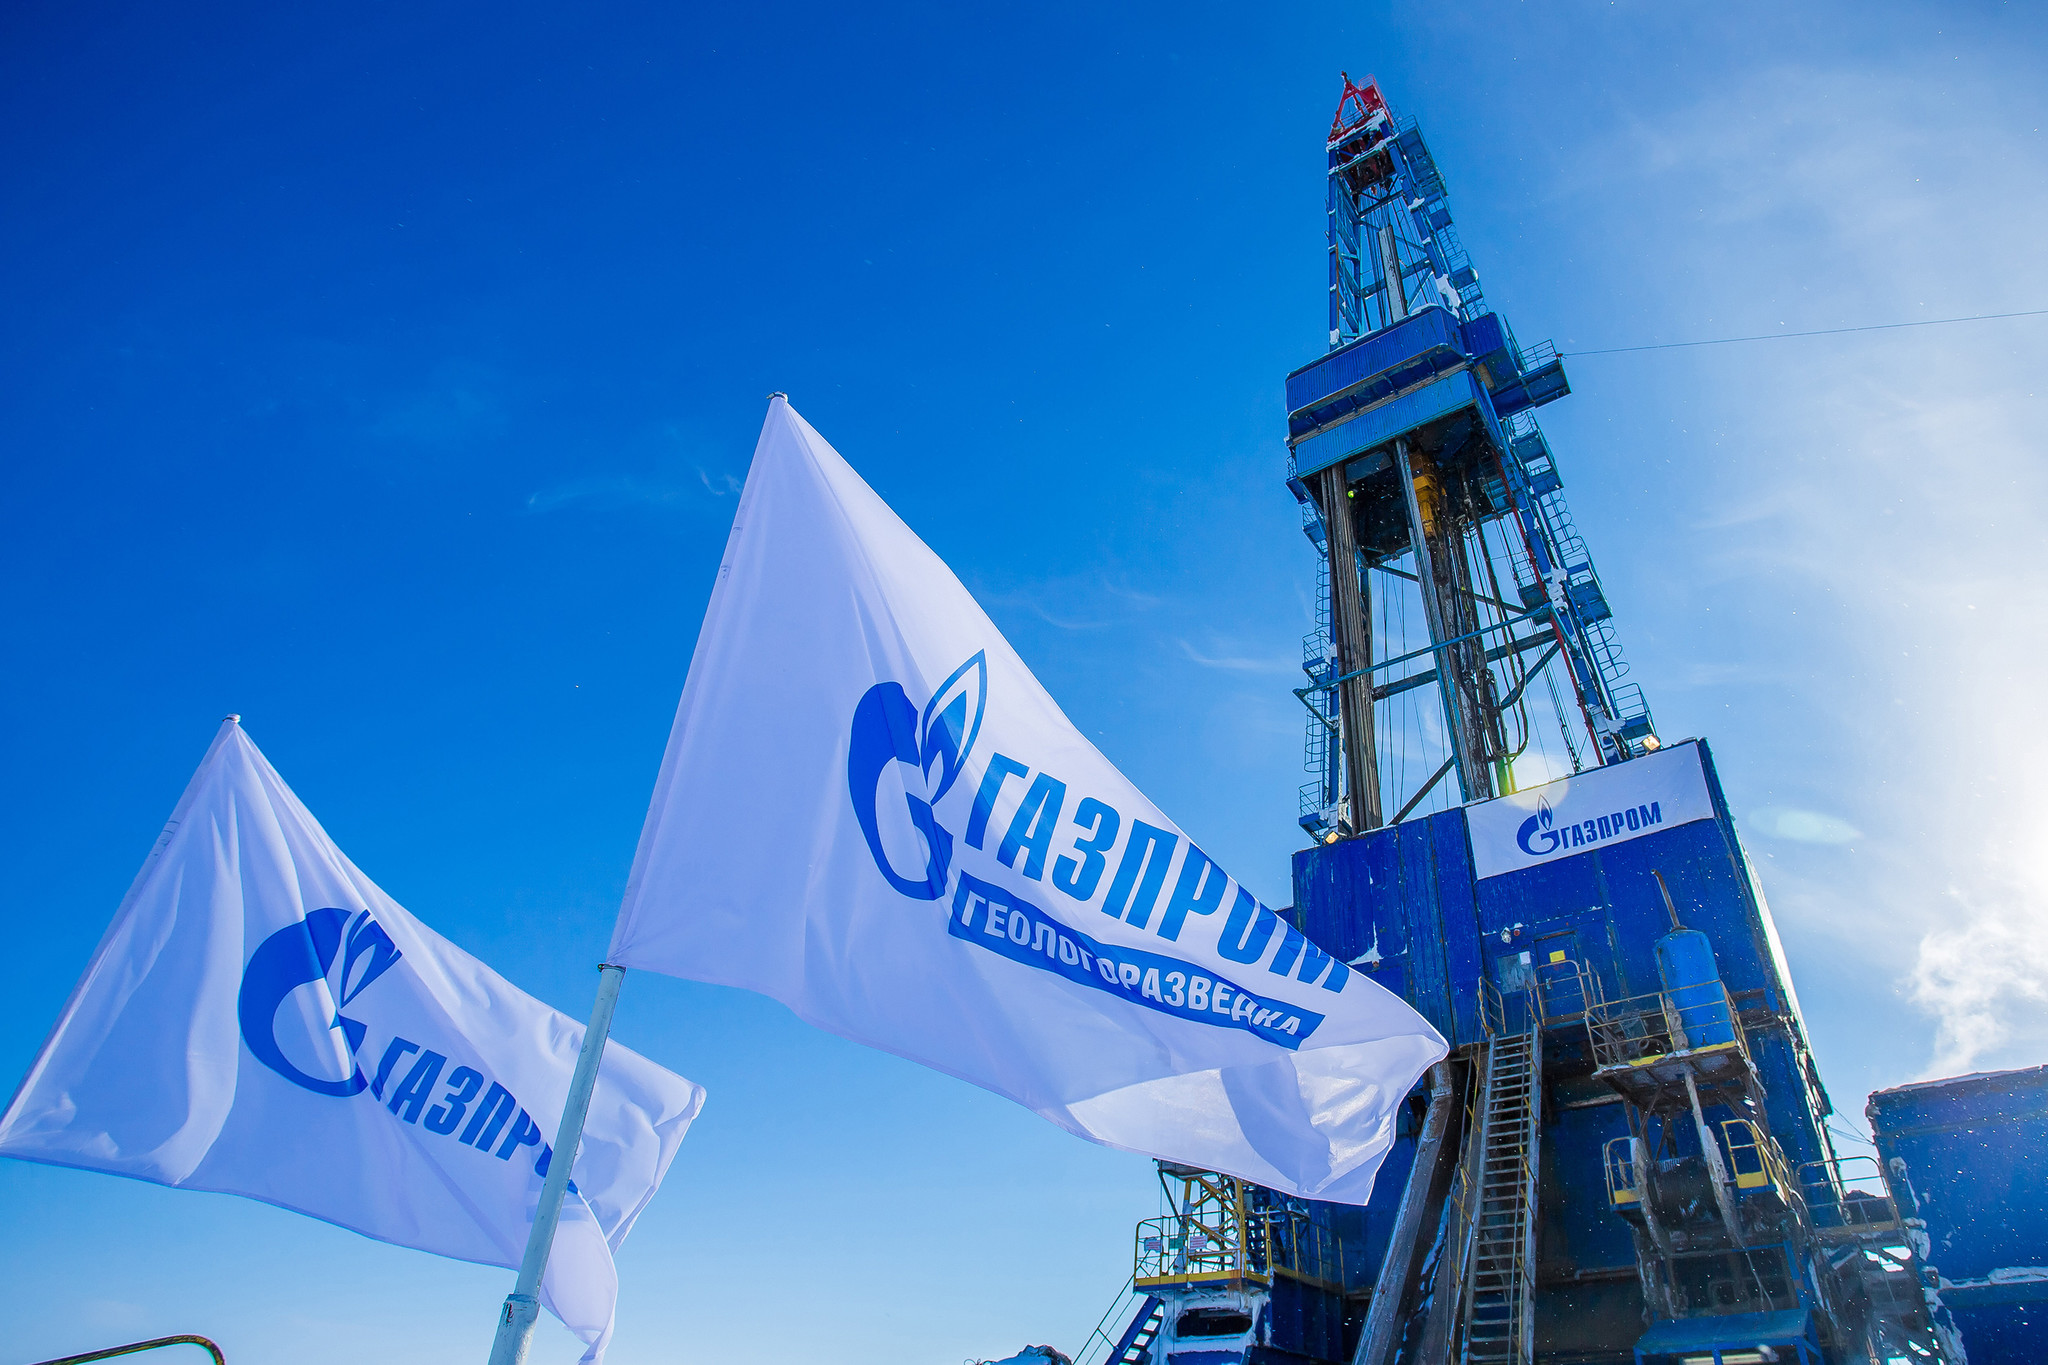 THE DEFEAT OF GAZPROM IN A DISPUTE WITH NAFTOGAZ IS BENEFICIAL FOR POLAND